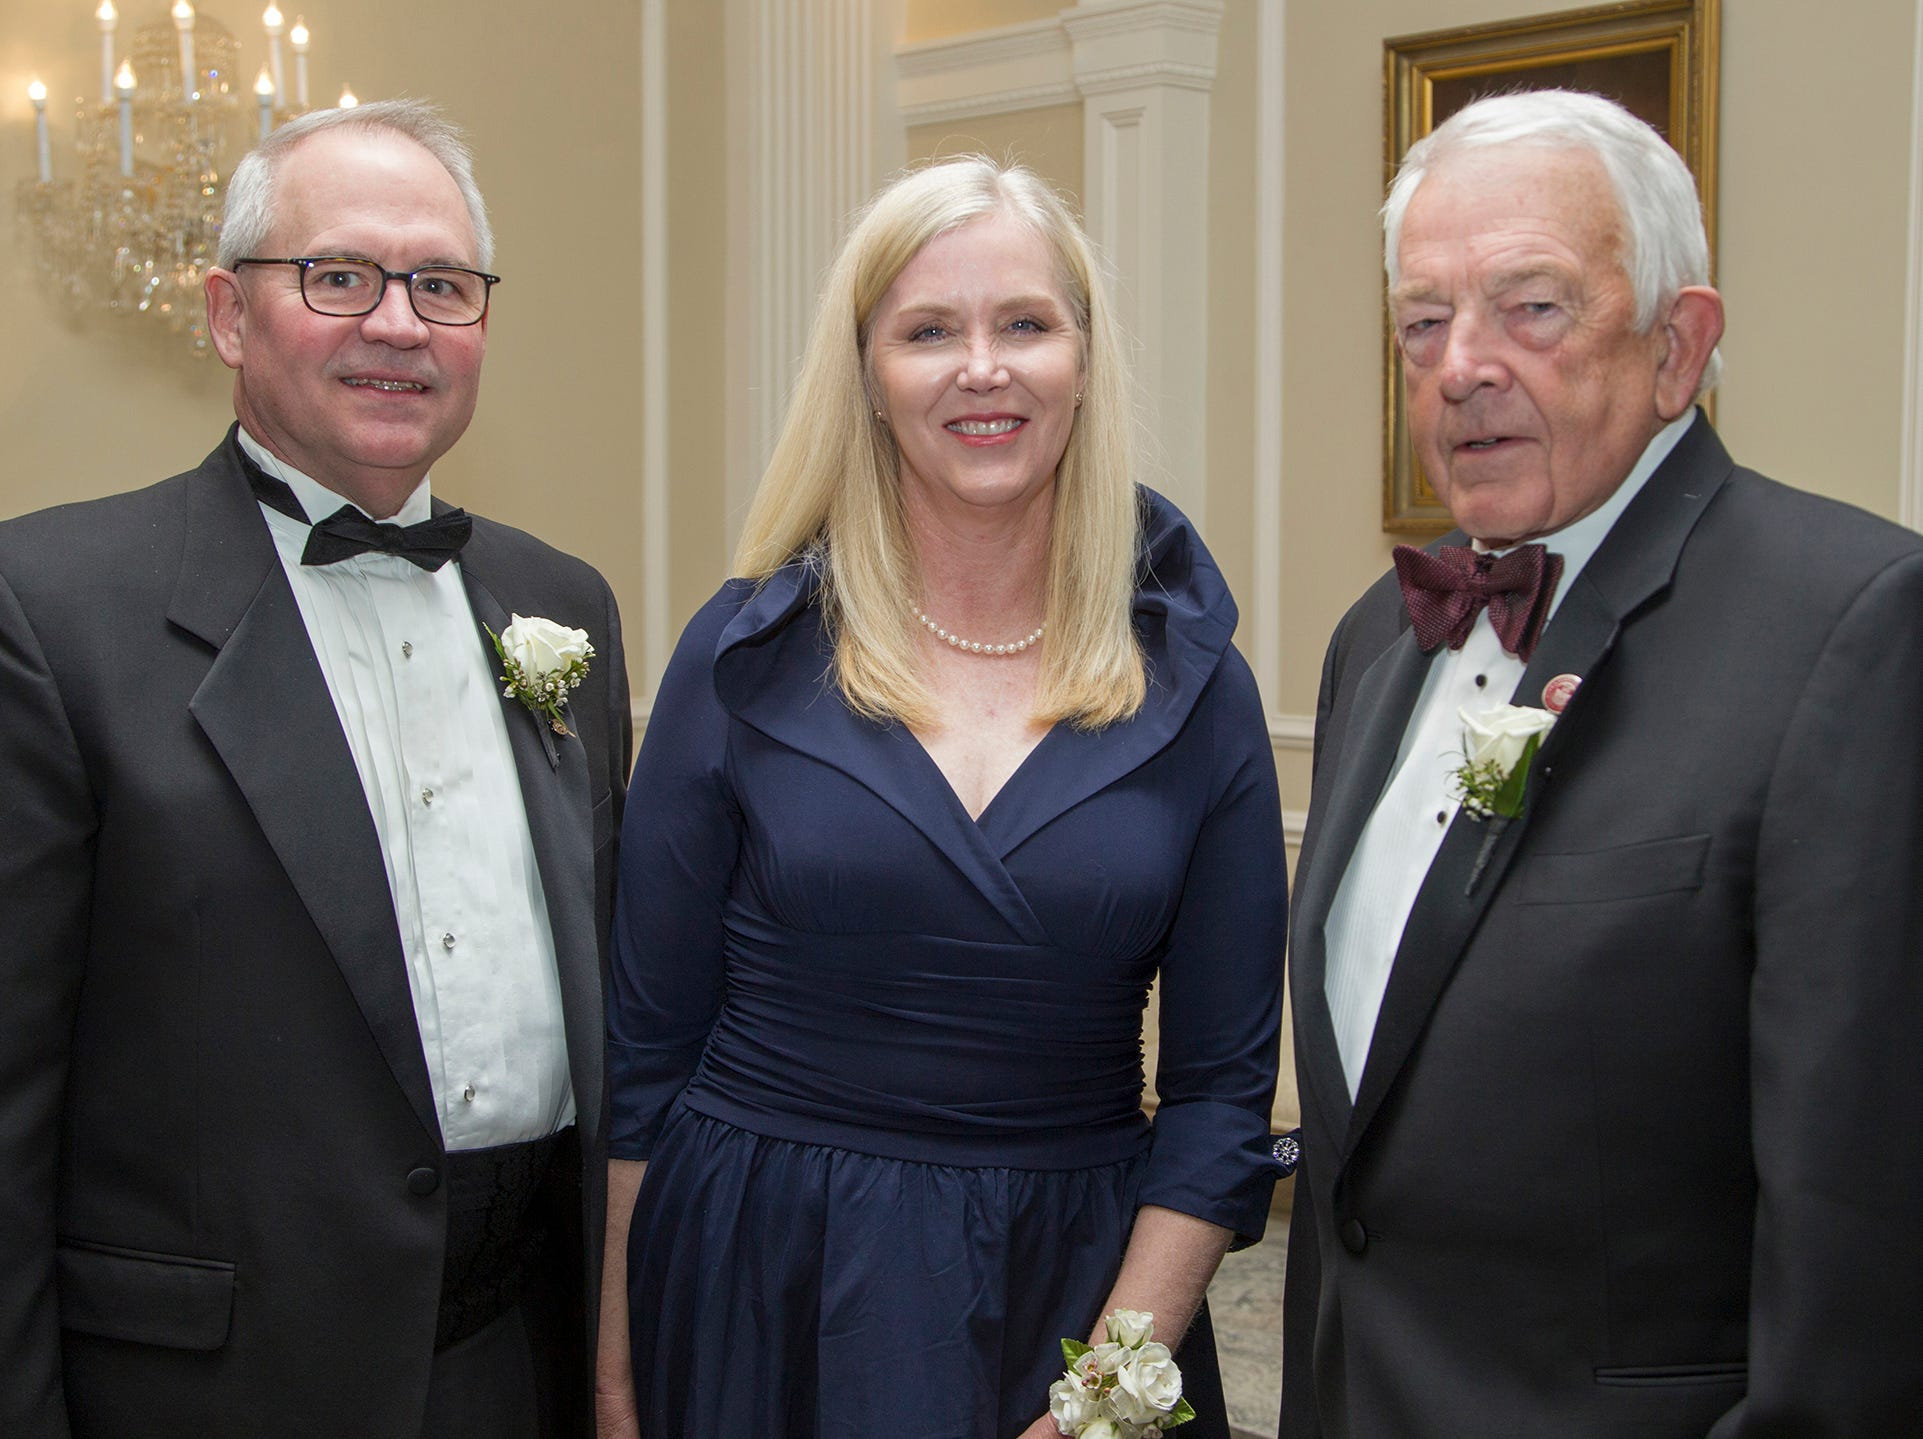 Lee Maas, Beth Maas, William F. Dator. Ramapo College held its 37th Annual Distinguished Citizens Dinner at Rockleigh Country Club. 03/02/2019